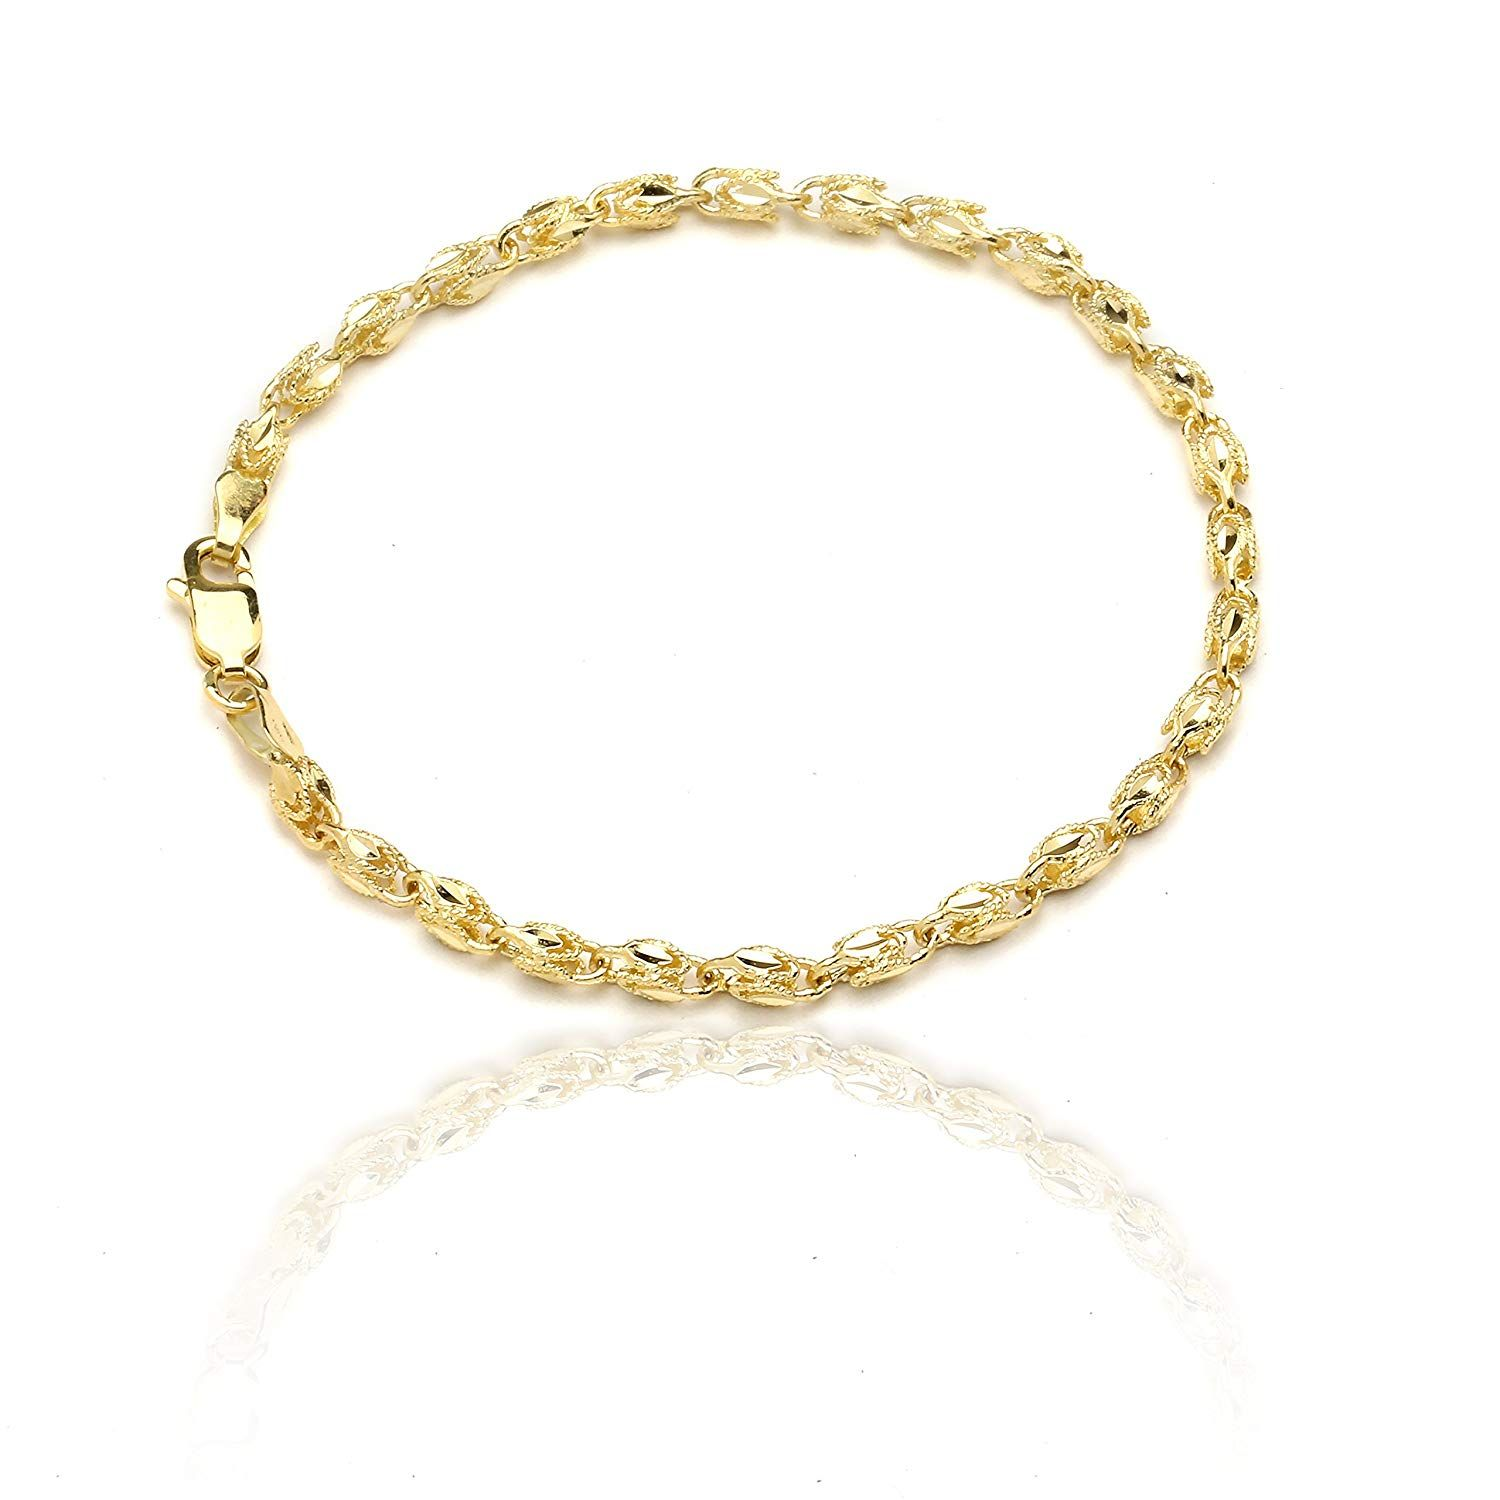 10k Yellow Gold Turkish Rope Chain Bracelet And Anklet For Women And Men 3 5mm Wonderful Of You Mens Gold Bracelets Gold Bracelet For Women Anklets Online